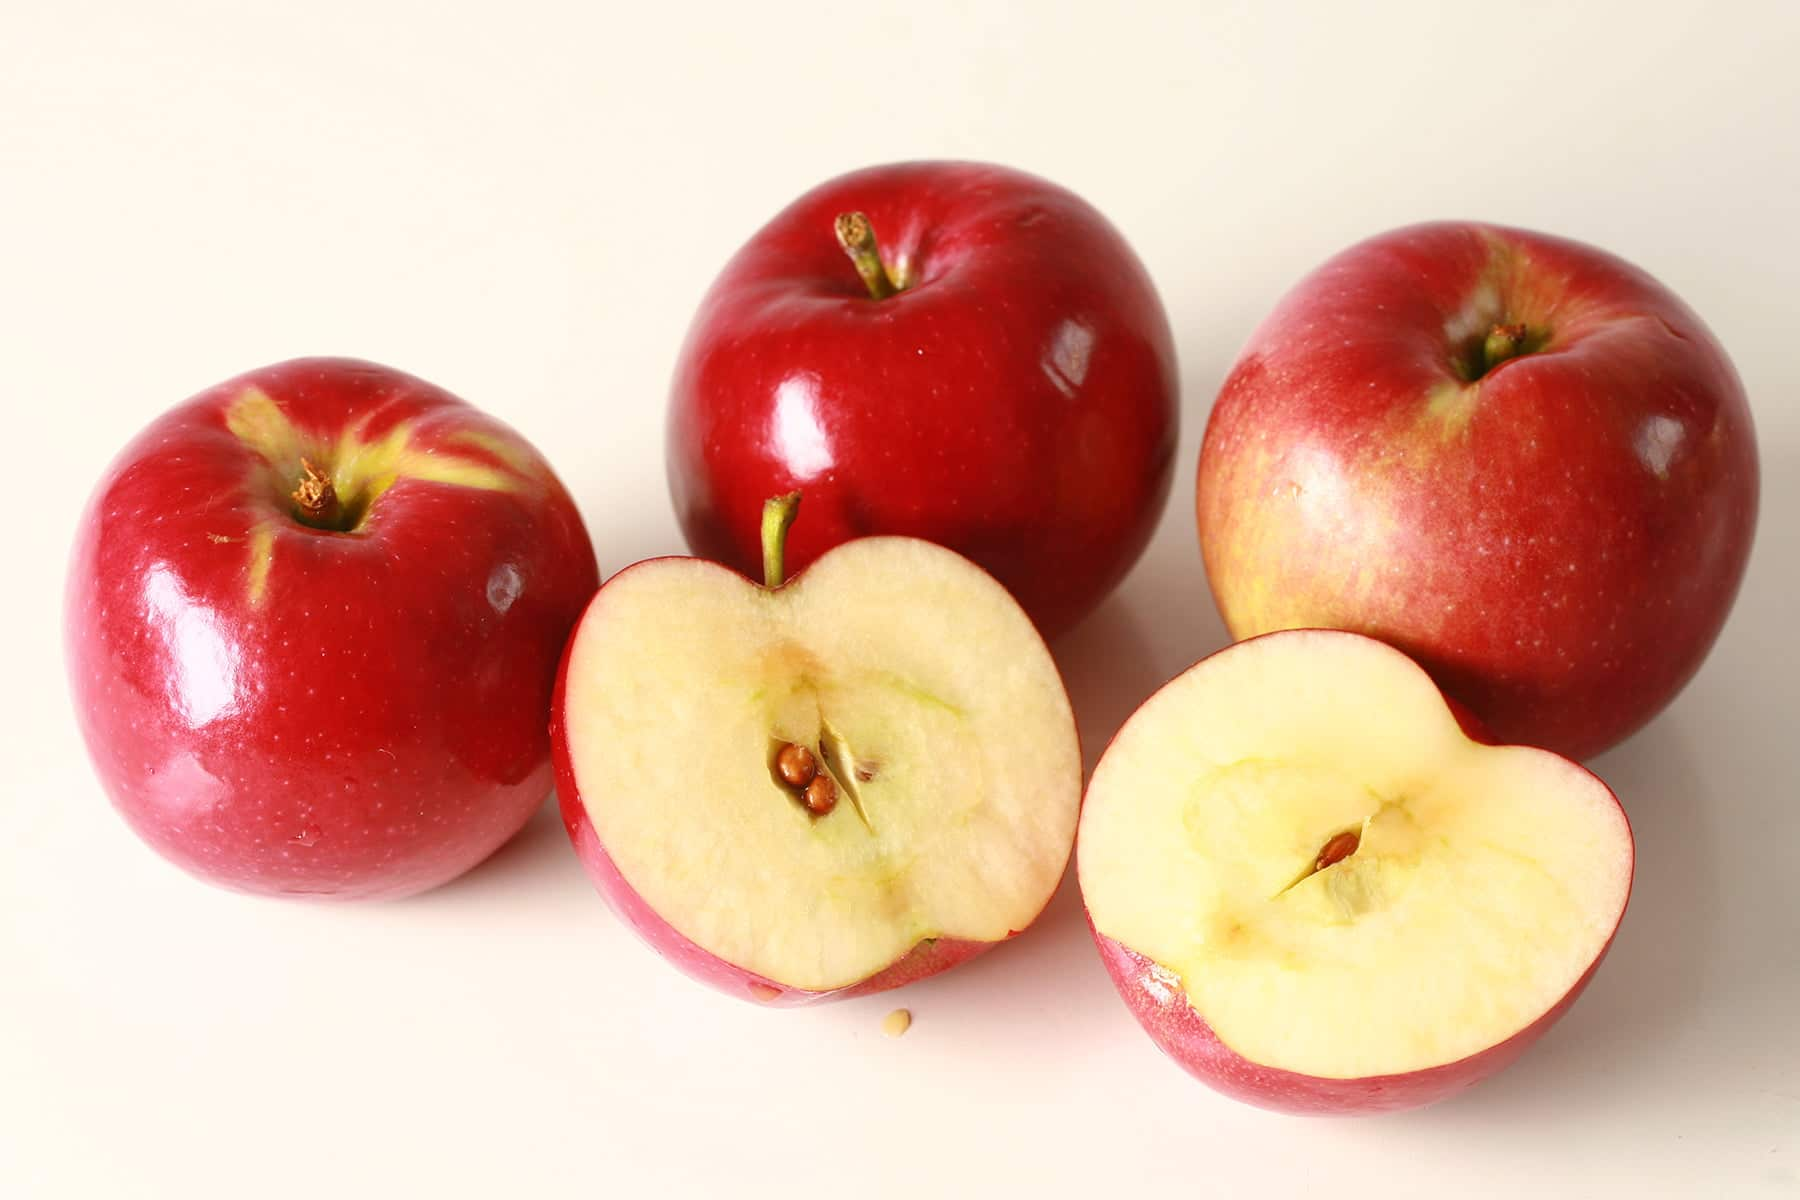 3 whole red apples and 1 apple cut in half, against a white background.